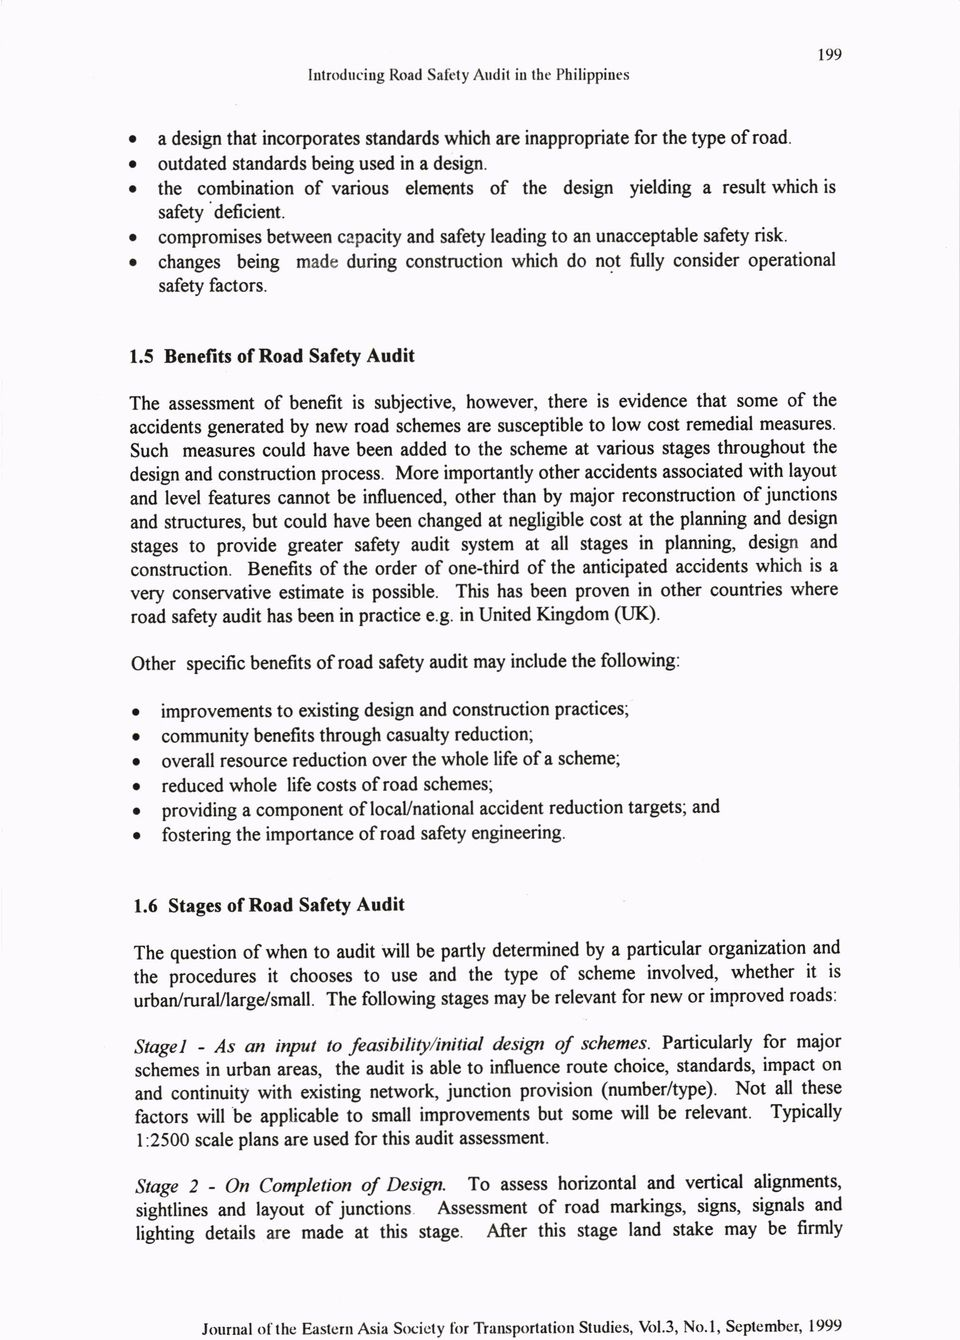 I introduction introducing road safety audit in the philippines pdf o changes being made during construction which do not fully consider operational safety factors 1 buycottarizona Image collections